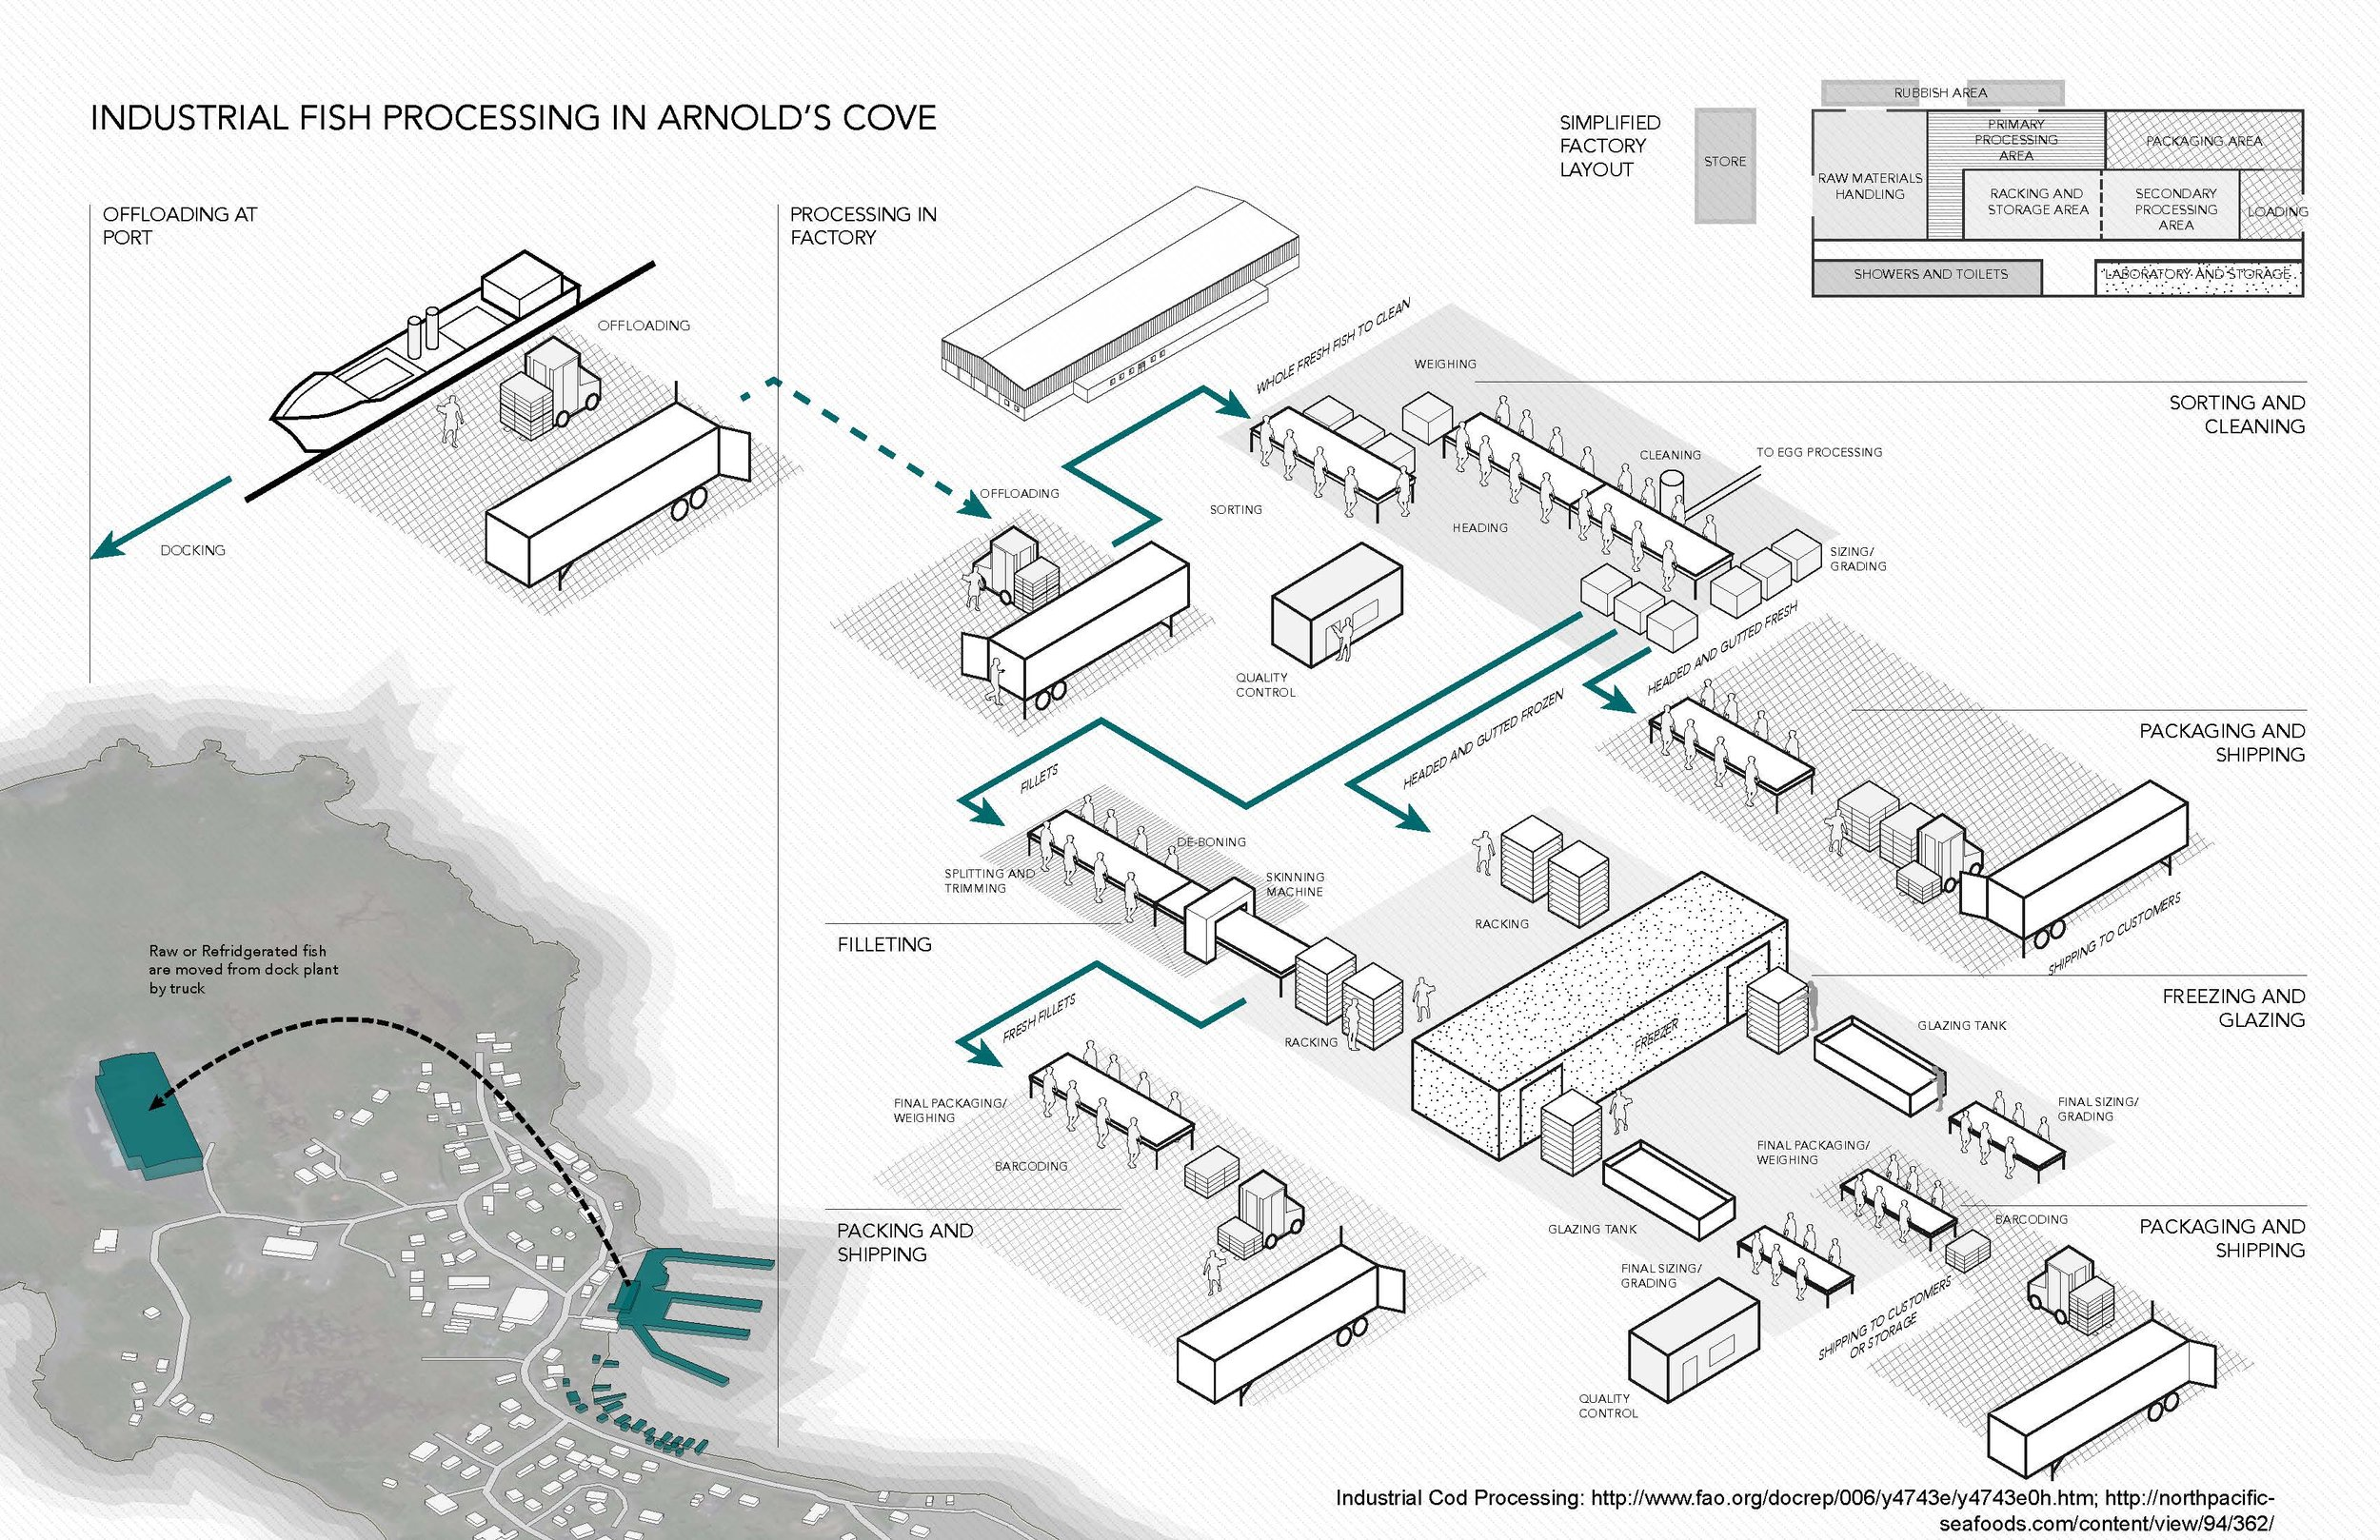 Diagram of fish processing in a typical industrial warehouse.